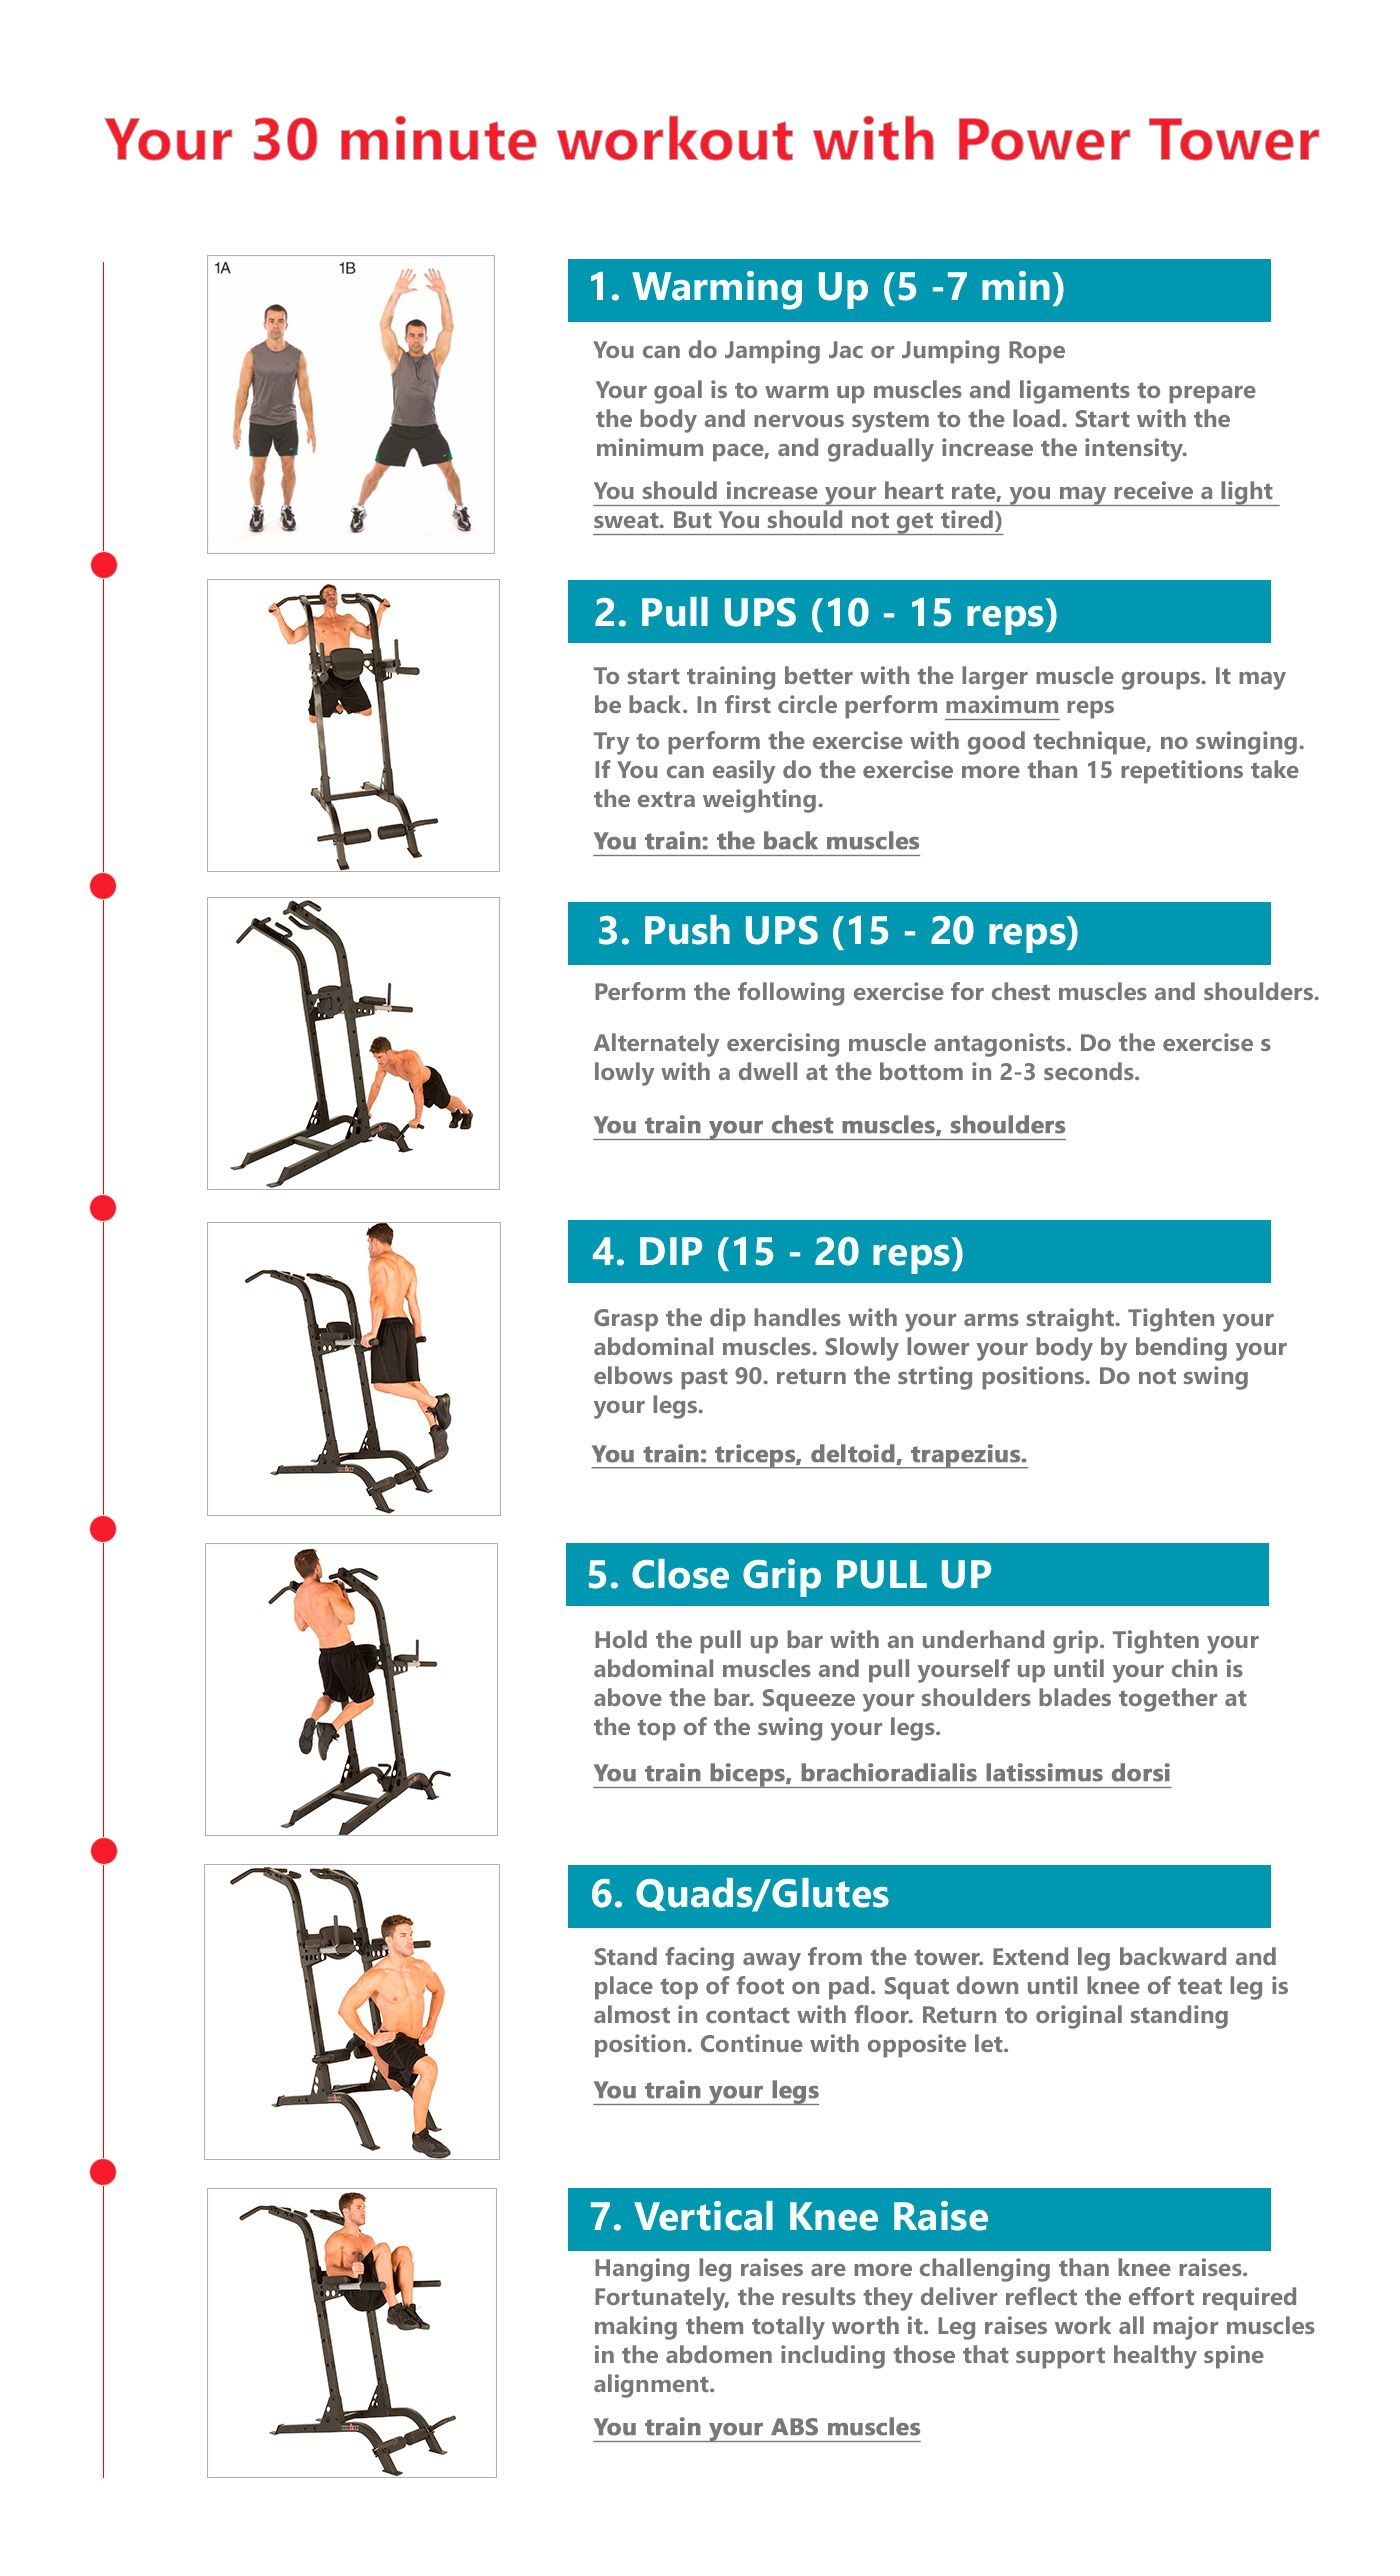 Fast Workout With Power Tower Pinterest This Circuit Is A Simple Form Of The Commercial Ups 30 Minute